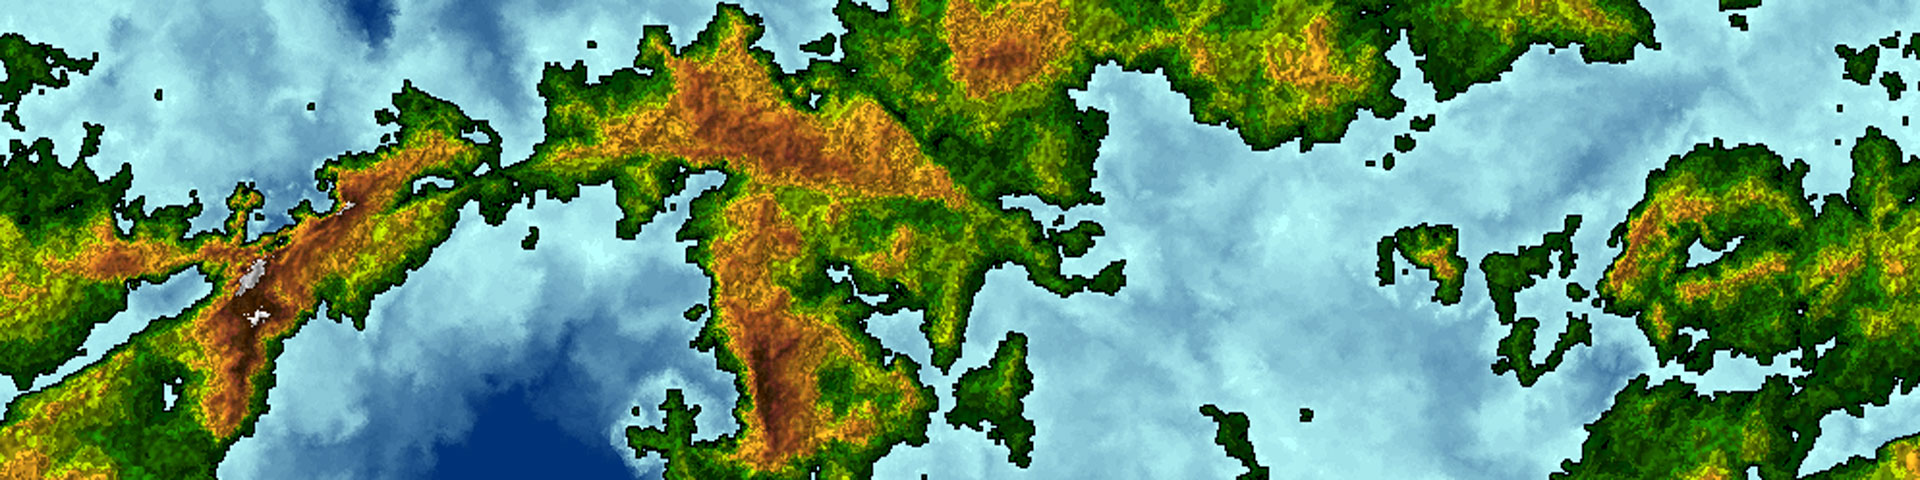 A fractal world map. Land masses are green and orange; water is blue.